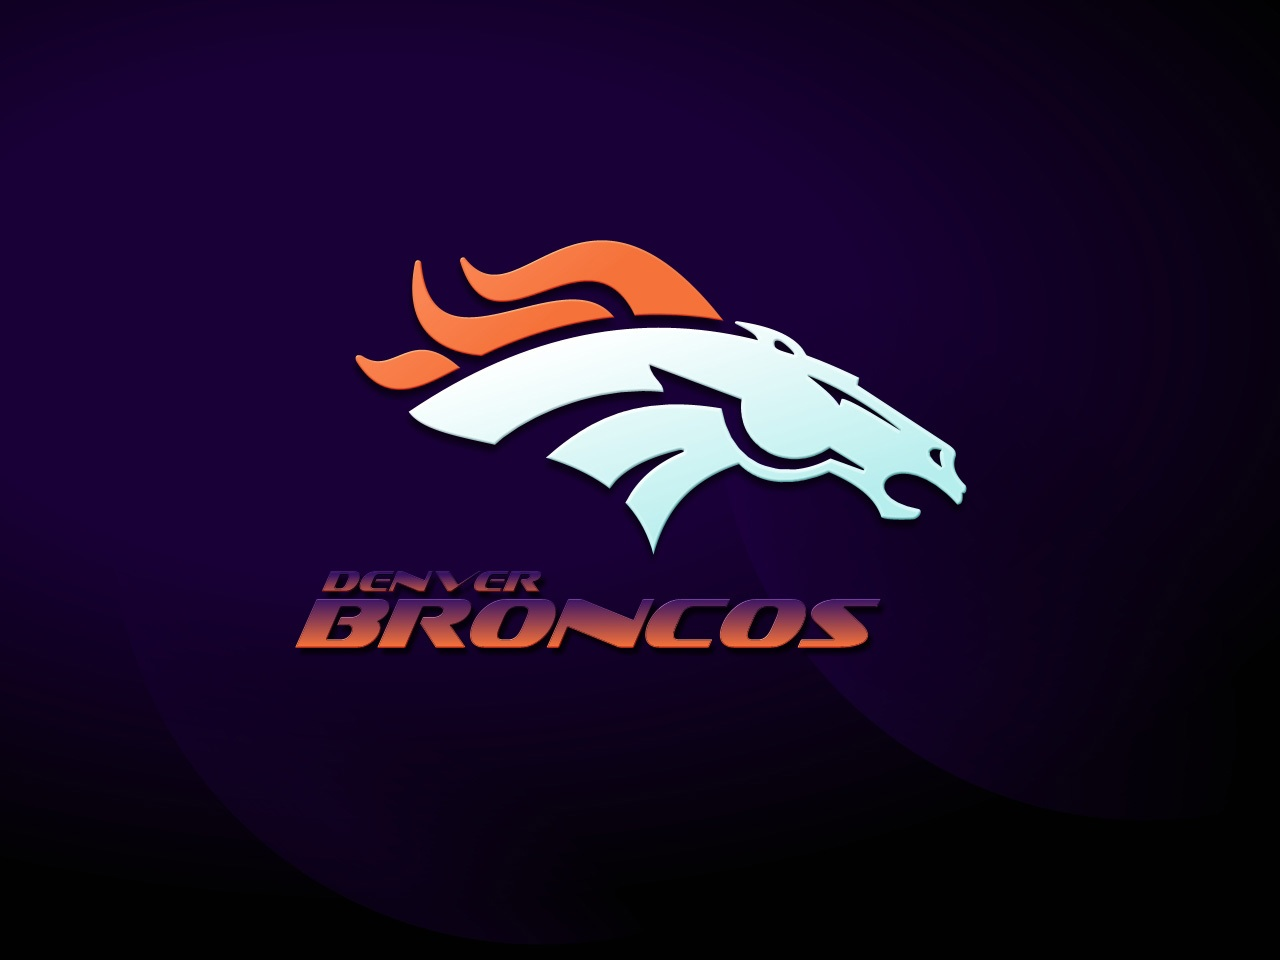 Broncos-logo-wallpaper-wp6002499